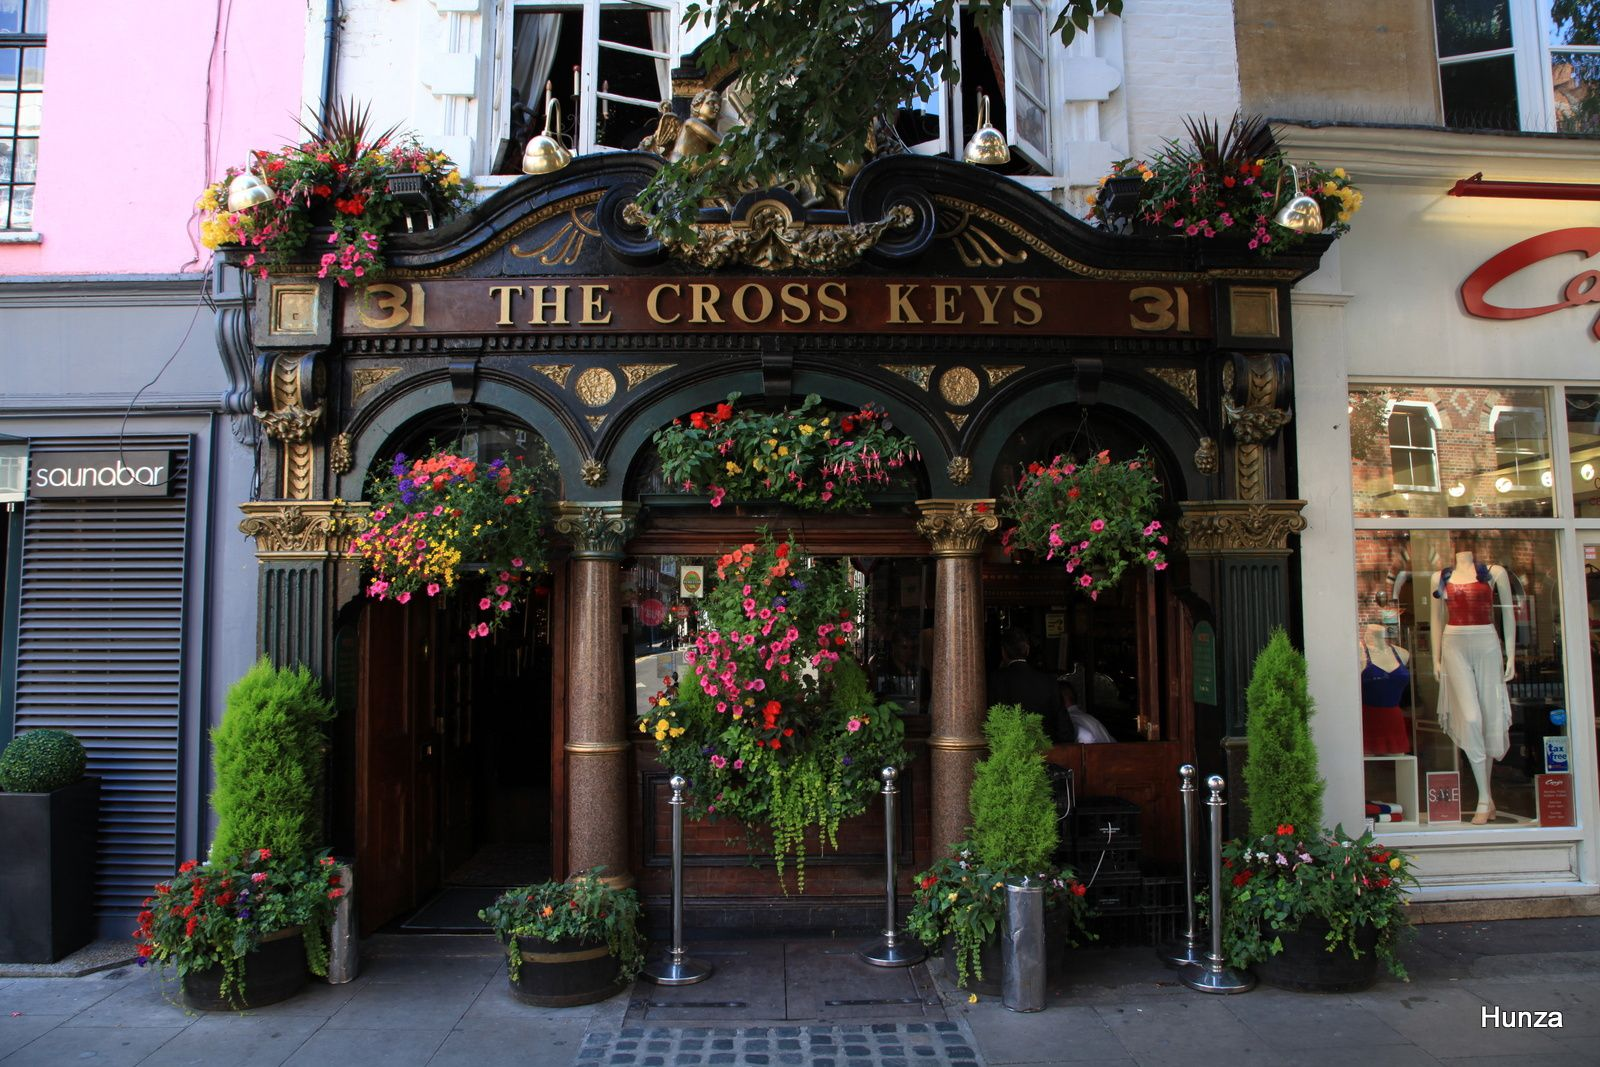 Le Cross Key, un pub londonien à Covent Garden